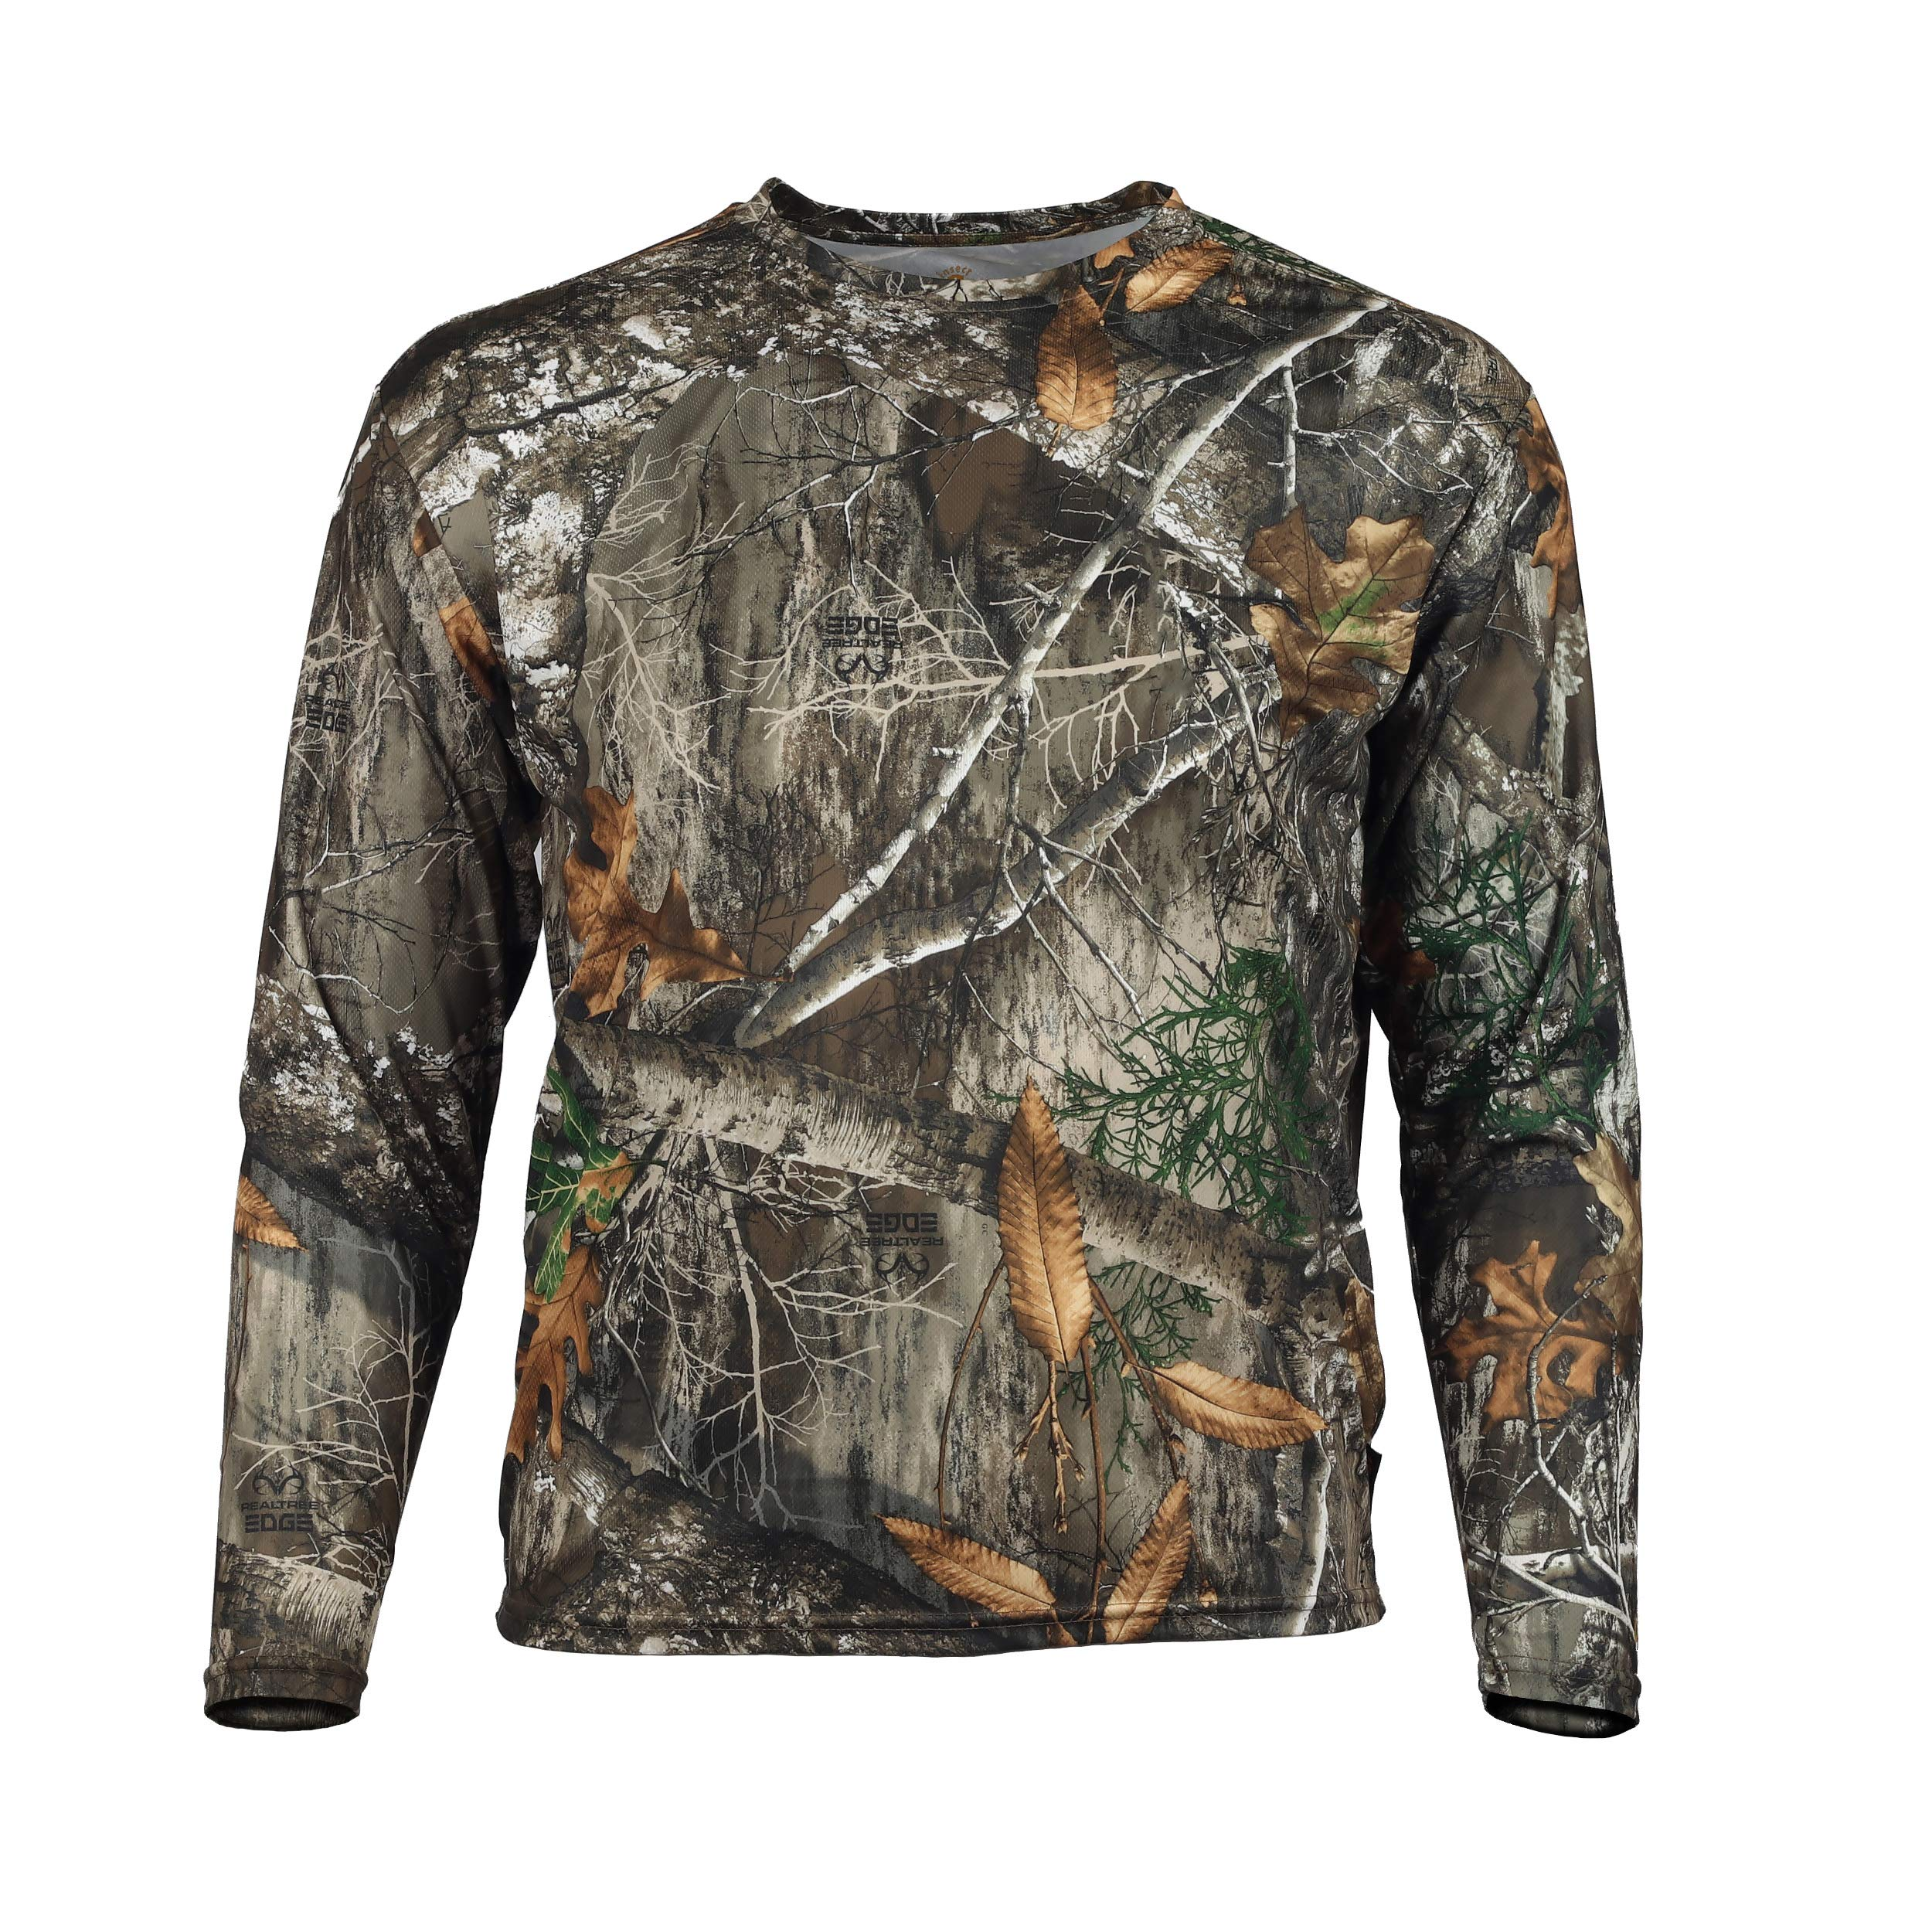 Gamehide ElimiTick Long Sleeve Tech Shirt (Realtree Edge, 4X-Large) by Gamehide